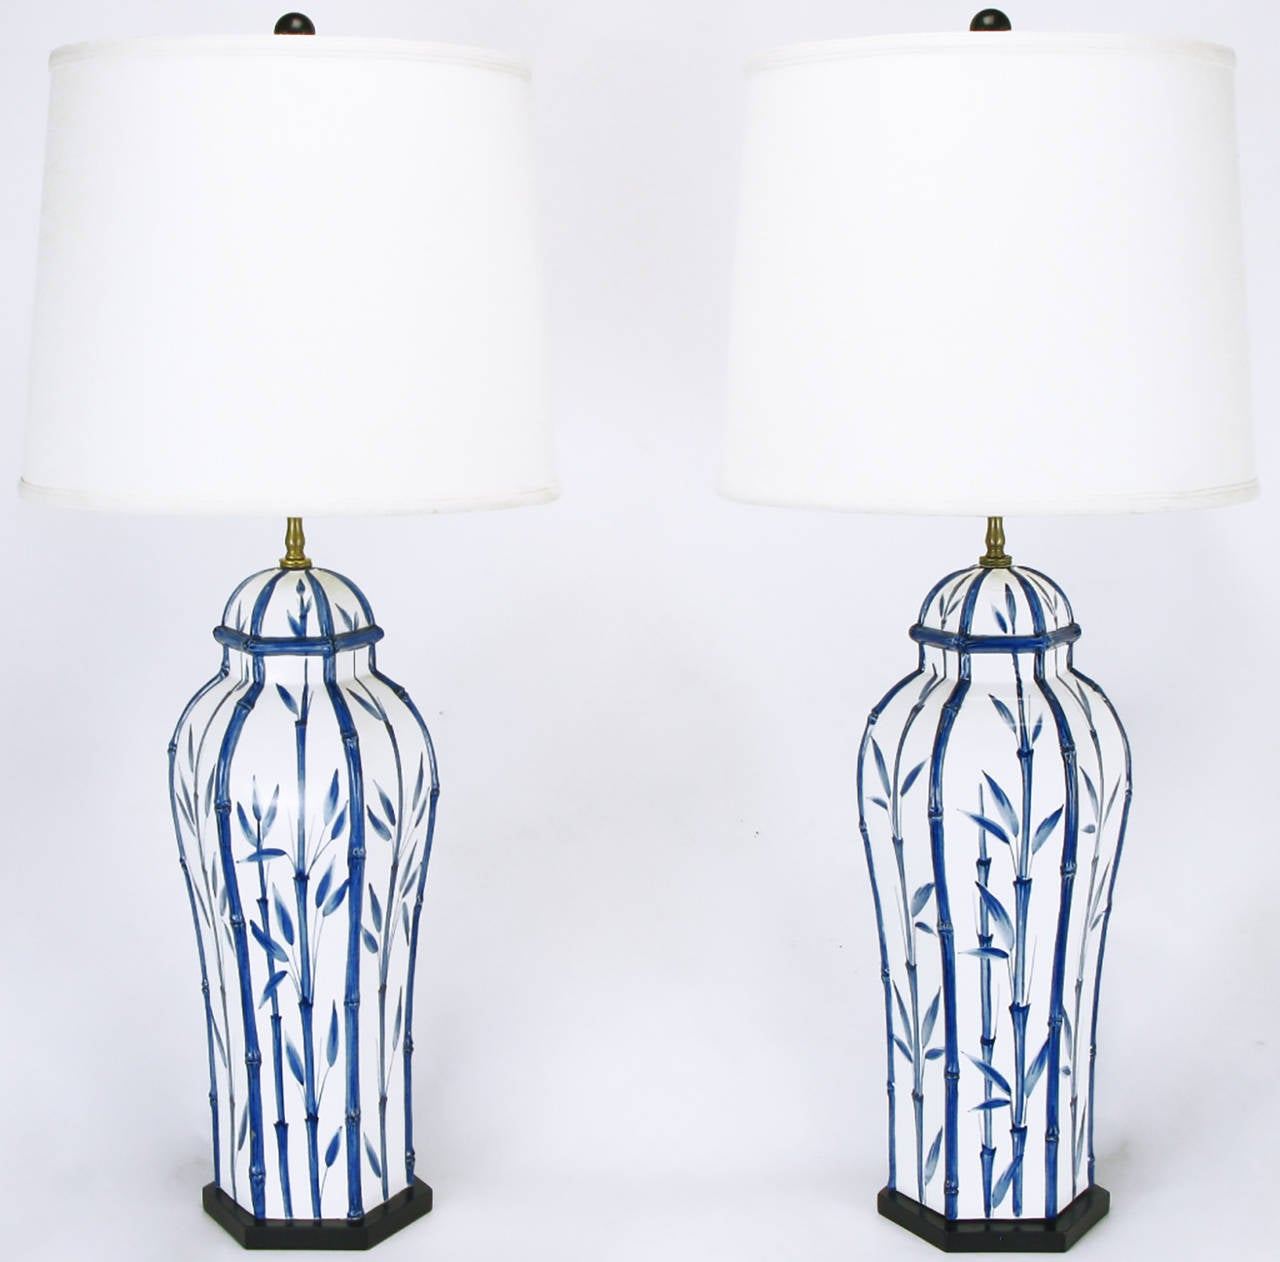 Pair of chapman white and blue ceramic ginger jar table lamps for pair of chapman white and blue ceramic ginger jar table lamps 2 geotapseo Gallery